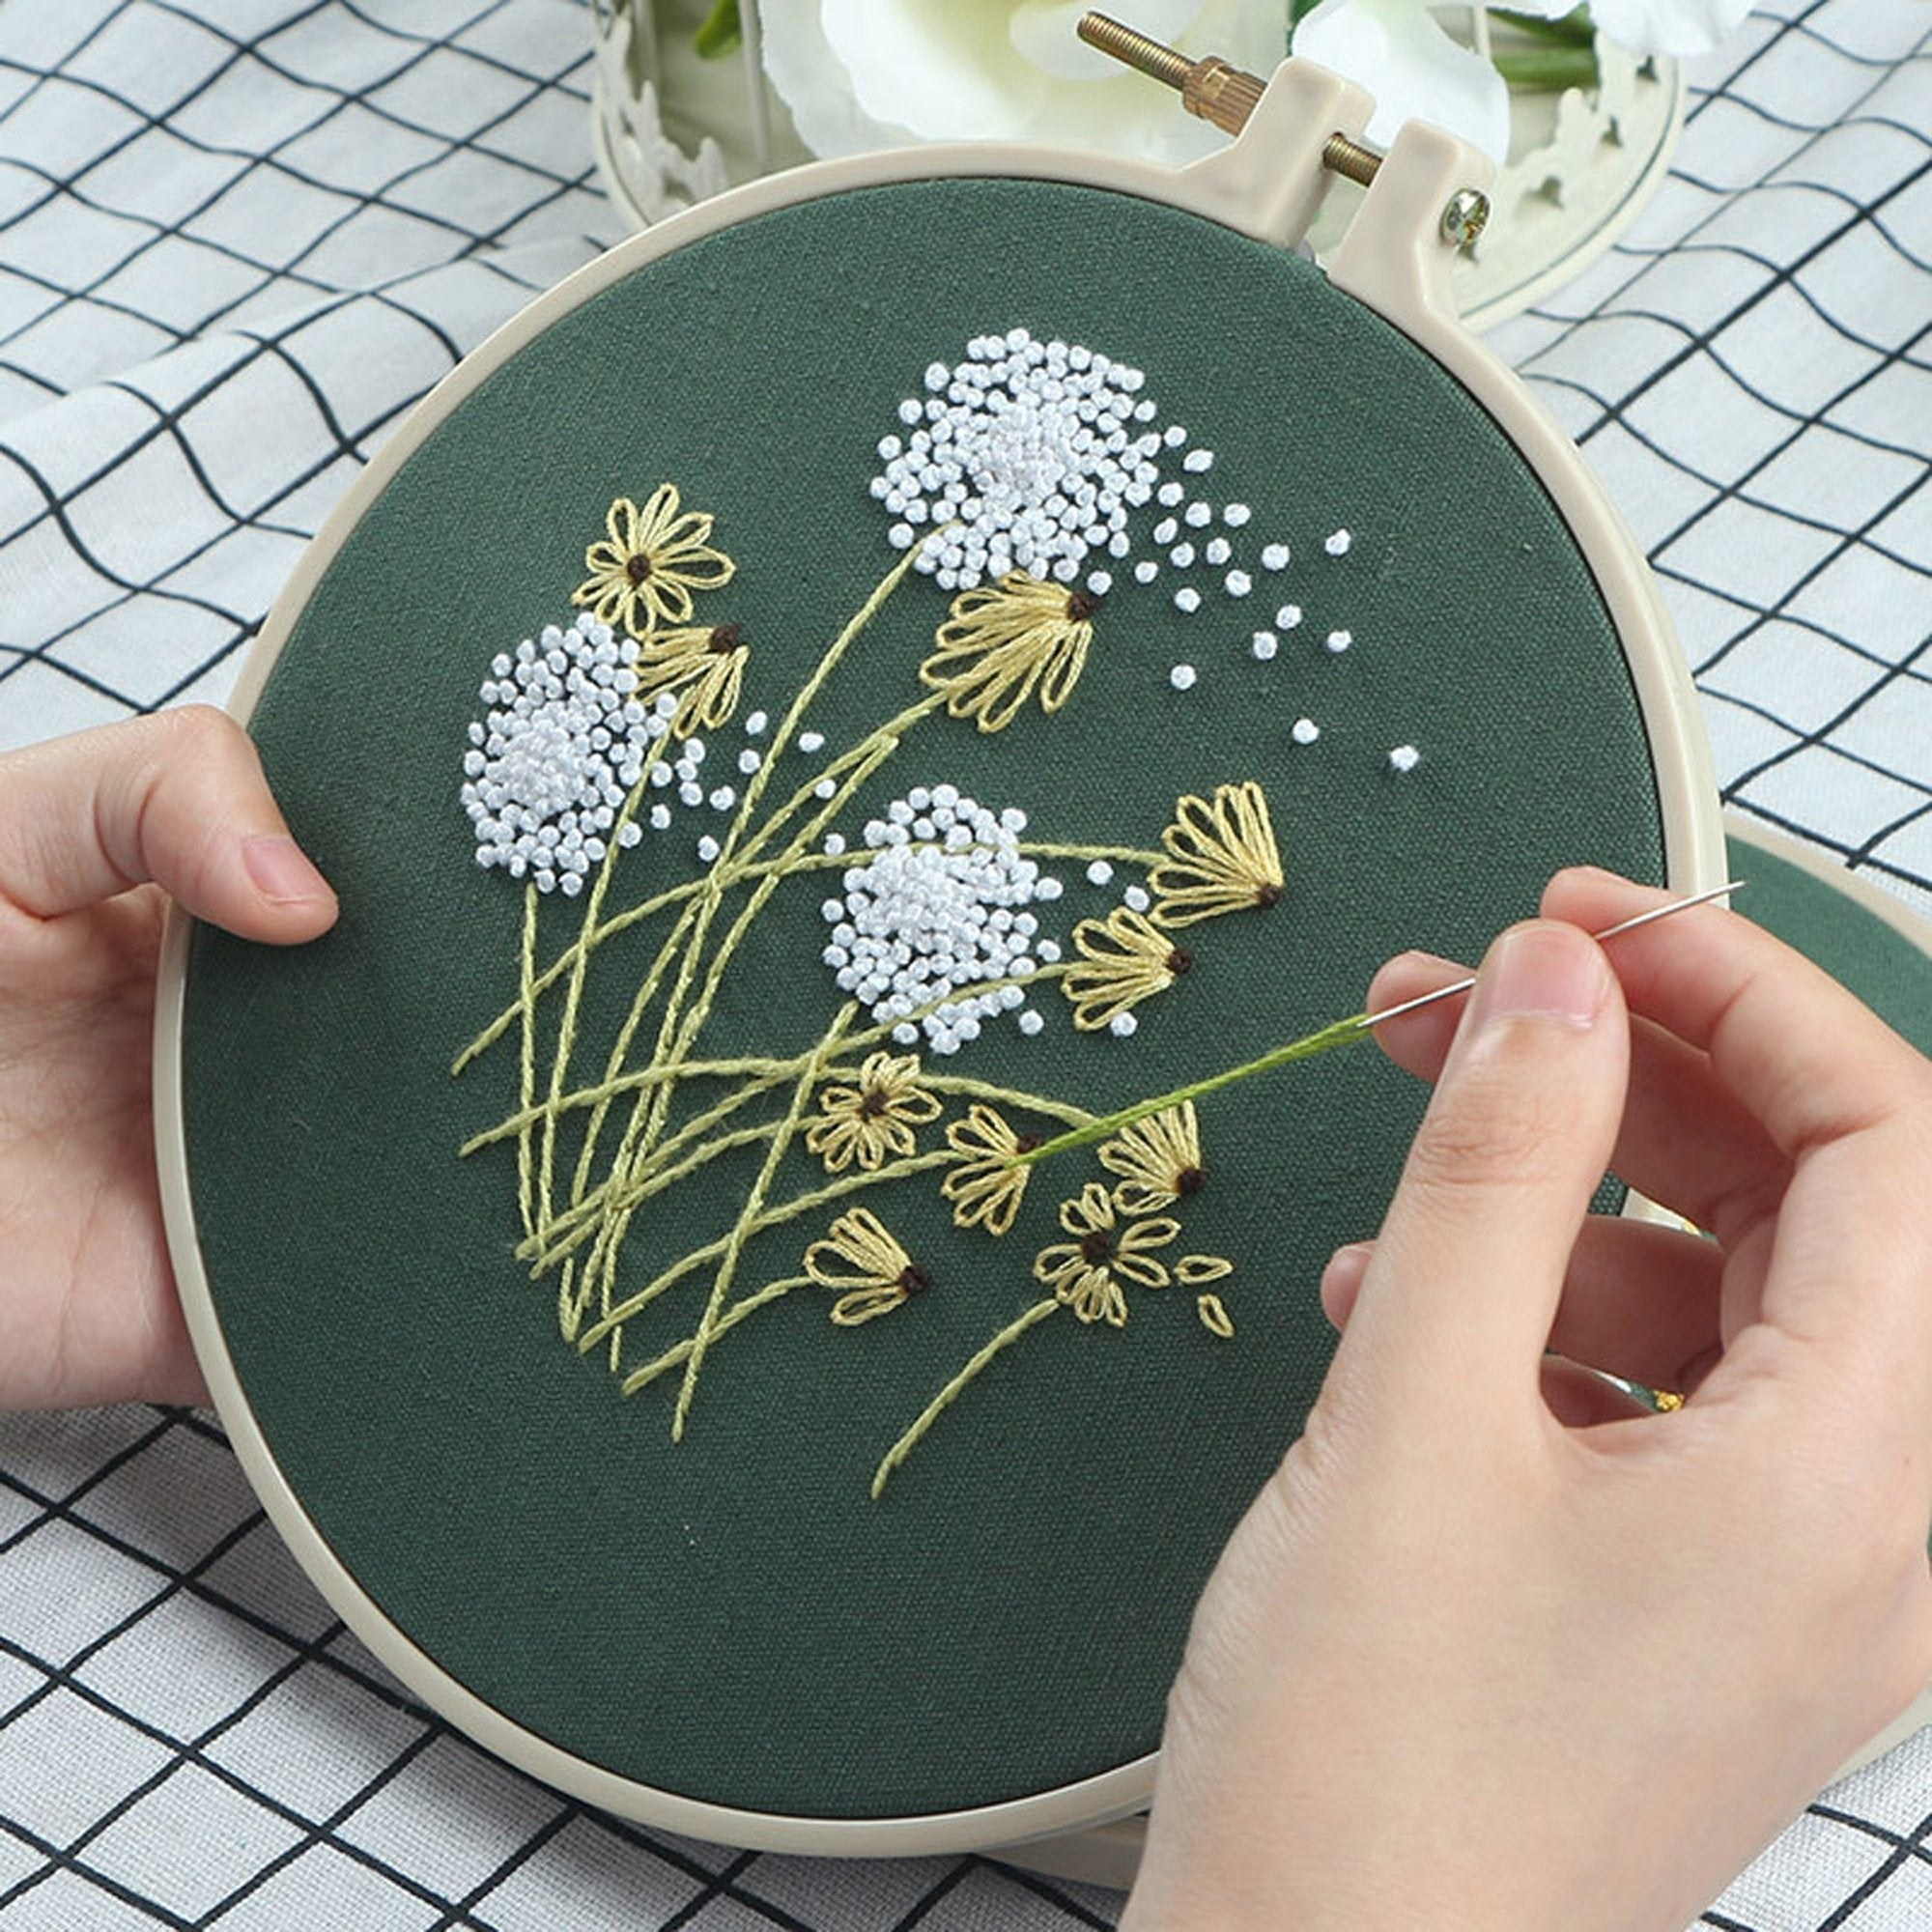 Model using using embroidery kit